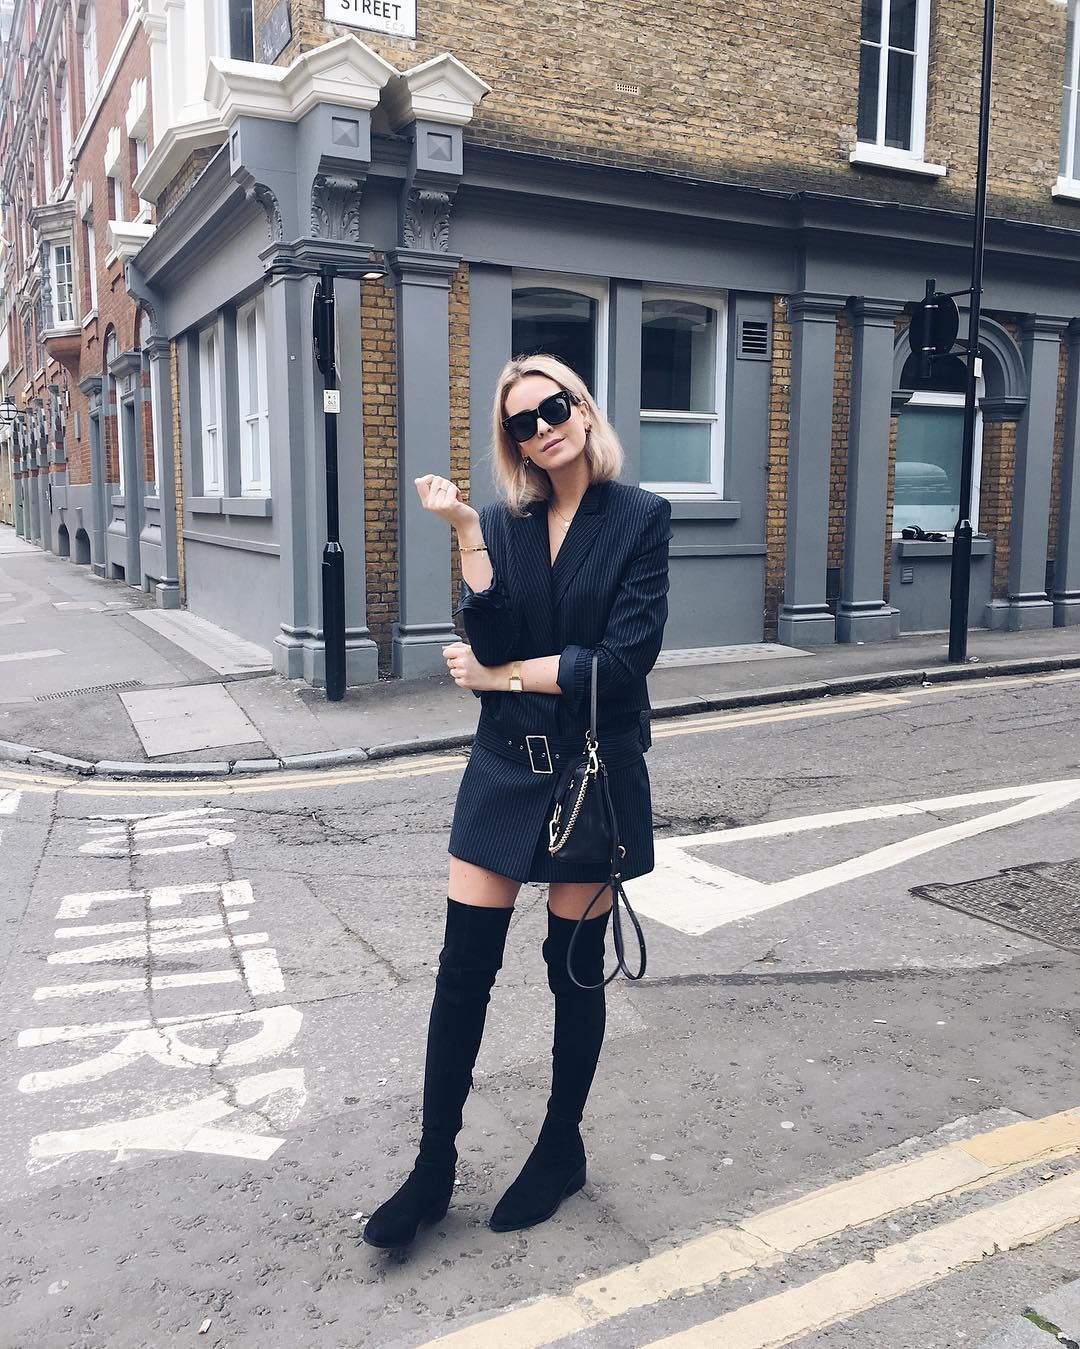 foto 7 Outfits To Copy From Instagram This Week